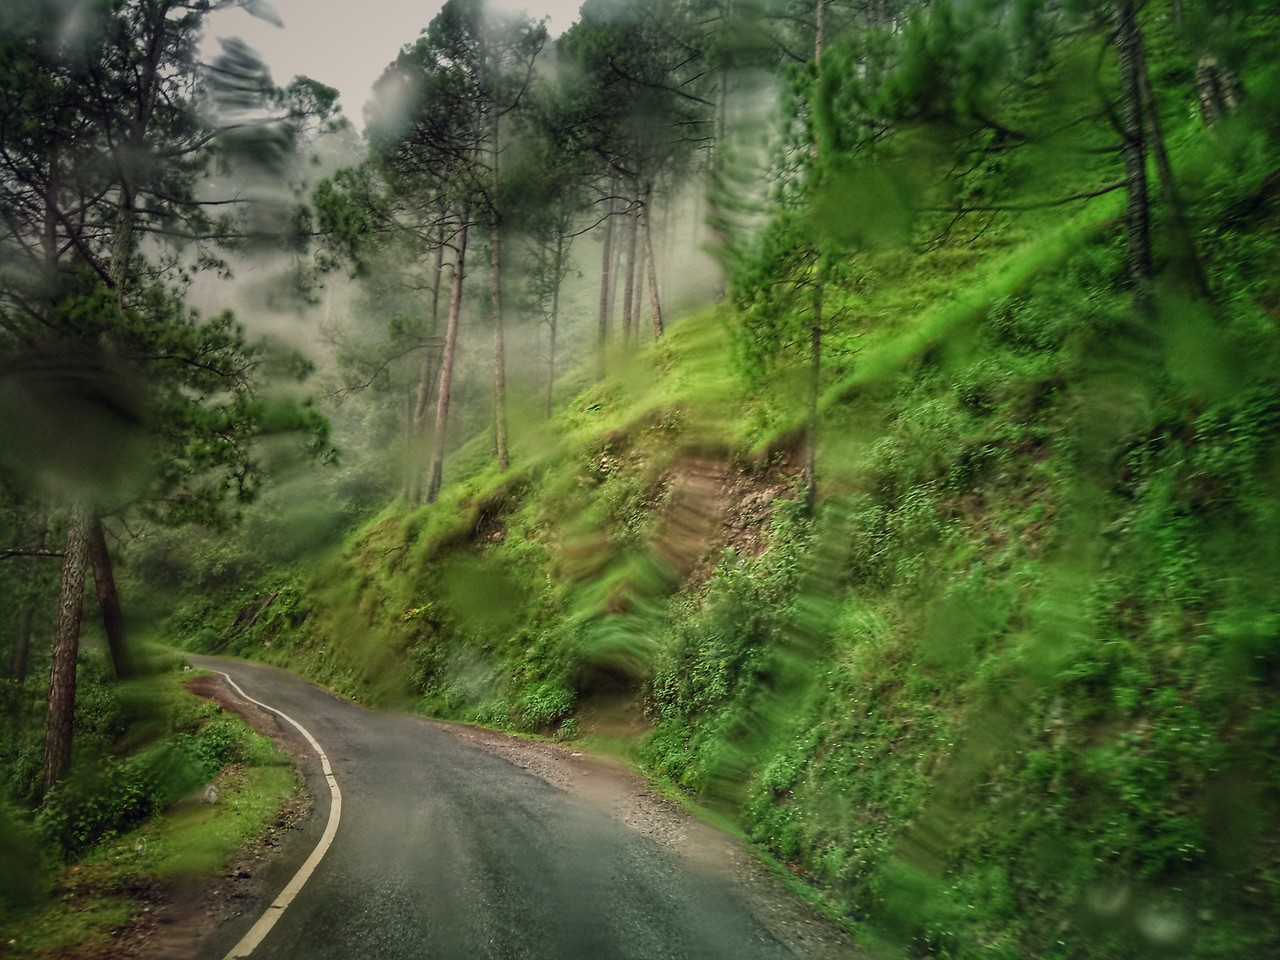 The route from Dehradun to The Goat Village in Dayara Bugyal, Raithal in Uttarakhand